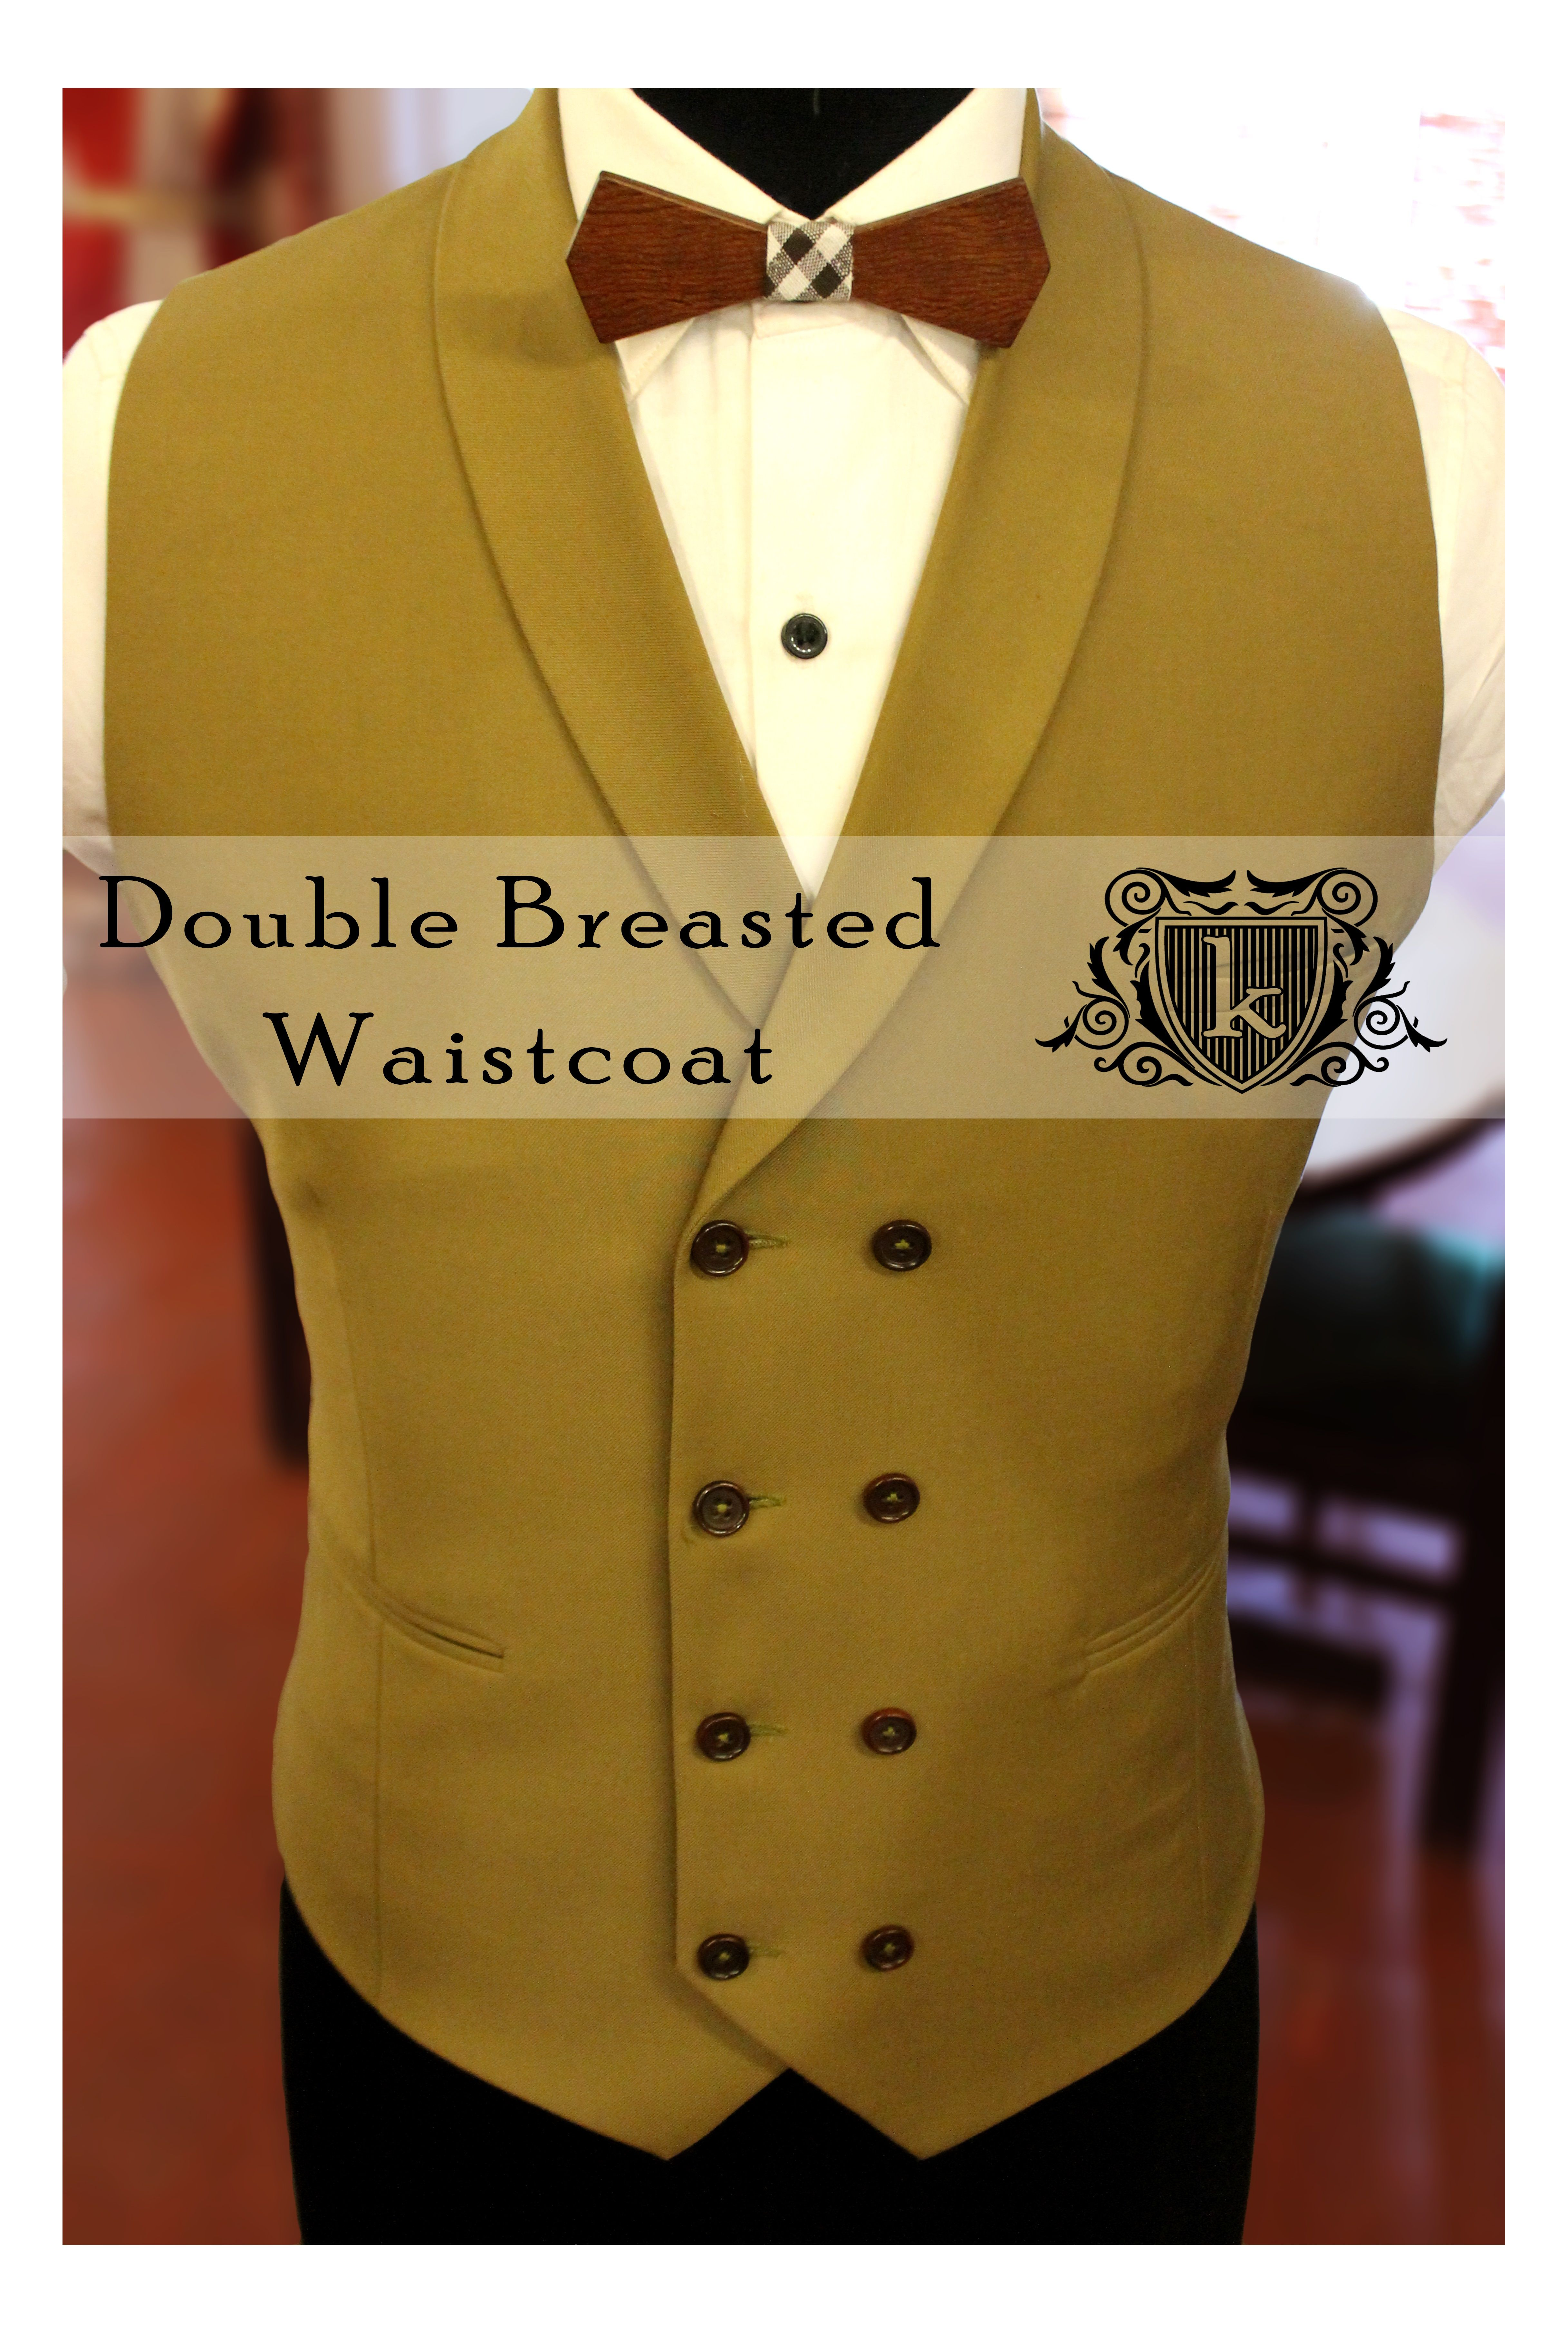 Waist Coat Wooden Bow Tuxedo Cocktail Outfit Inner Waistcoat Double breasted  Suit Double Breasted Waistcoat Craftsmanship Handmade Handcut Bespoke ... ff04e4d63